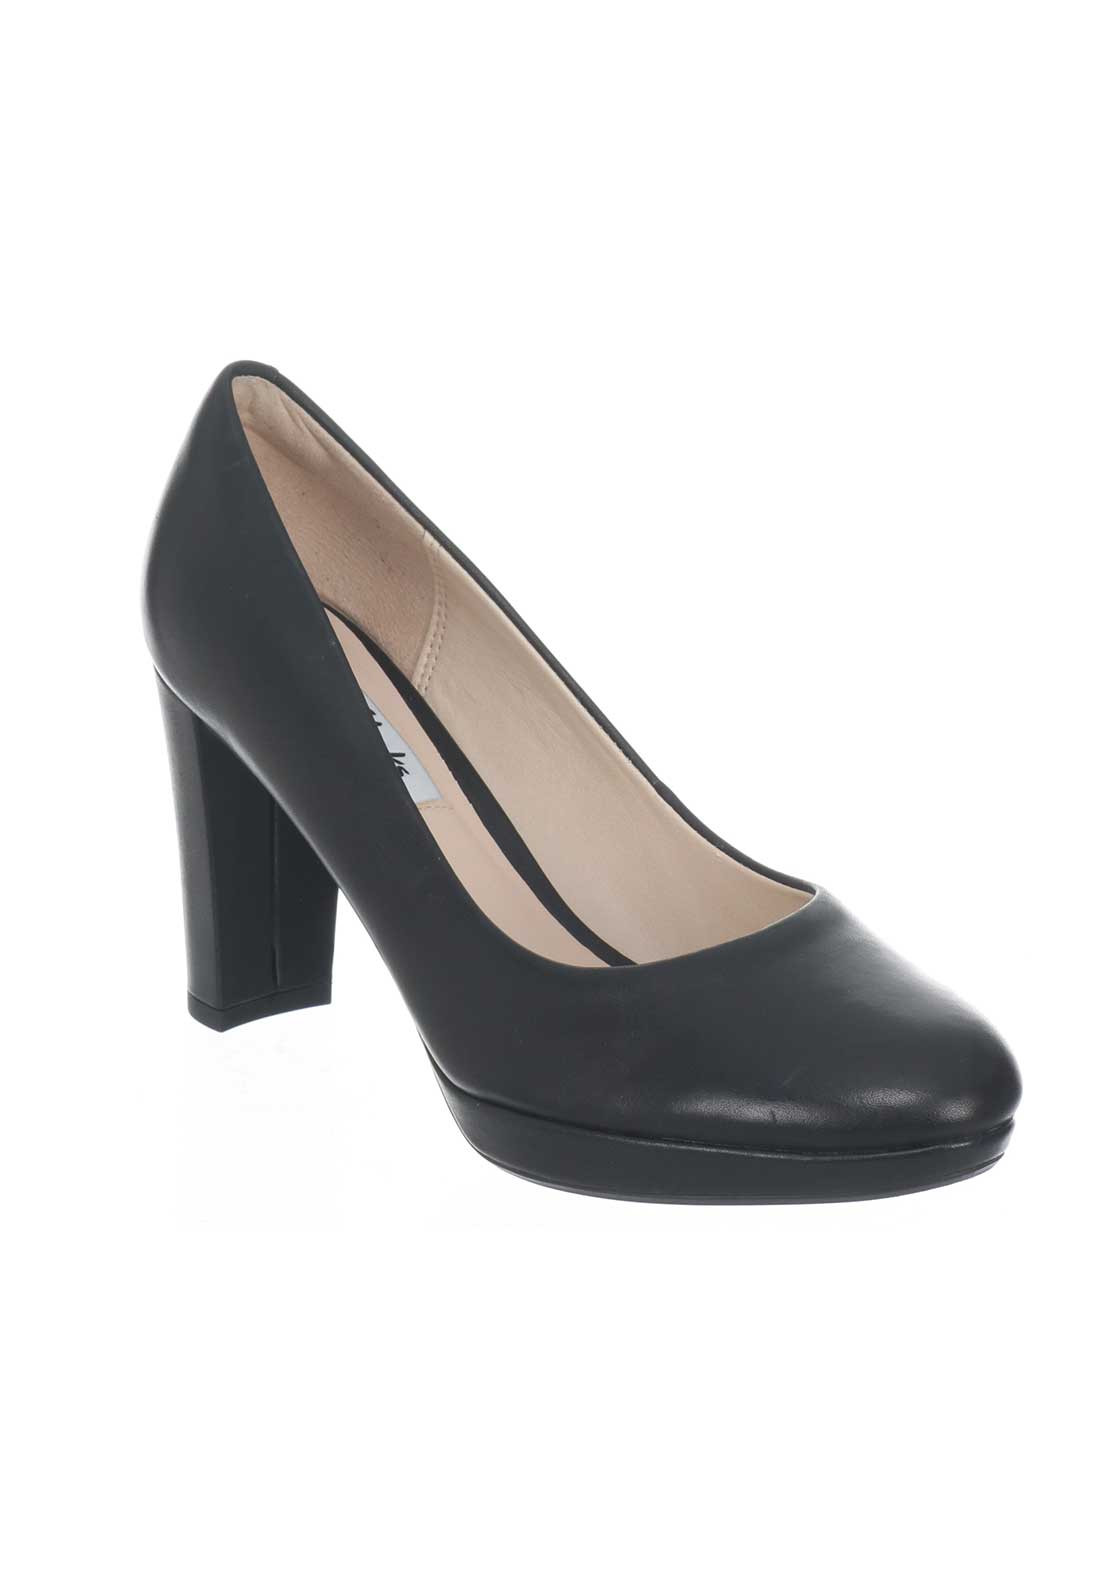 Clarks Womens Kendra Sienna Leather Court Shoes, Black